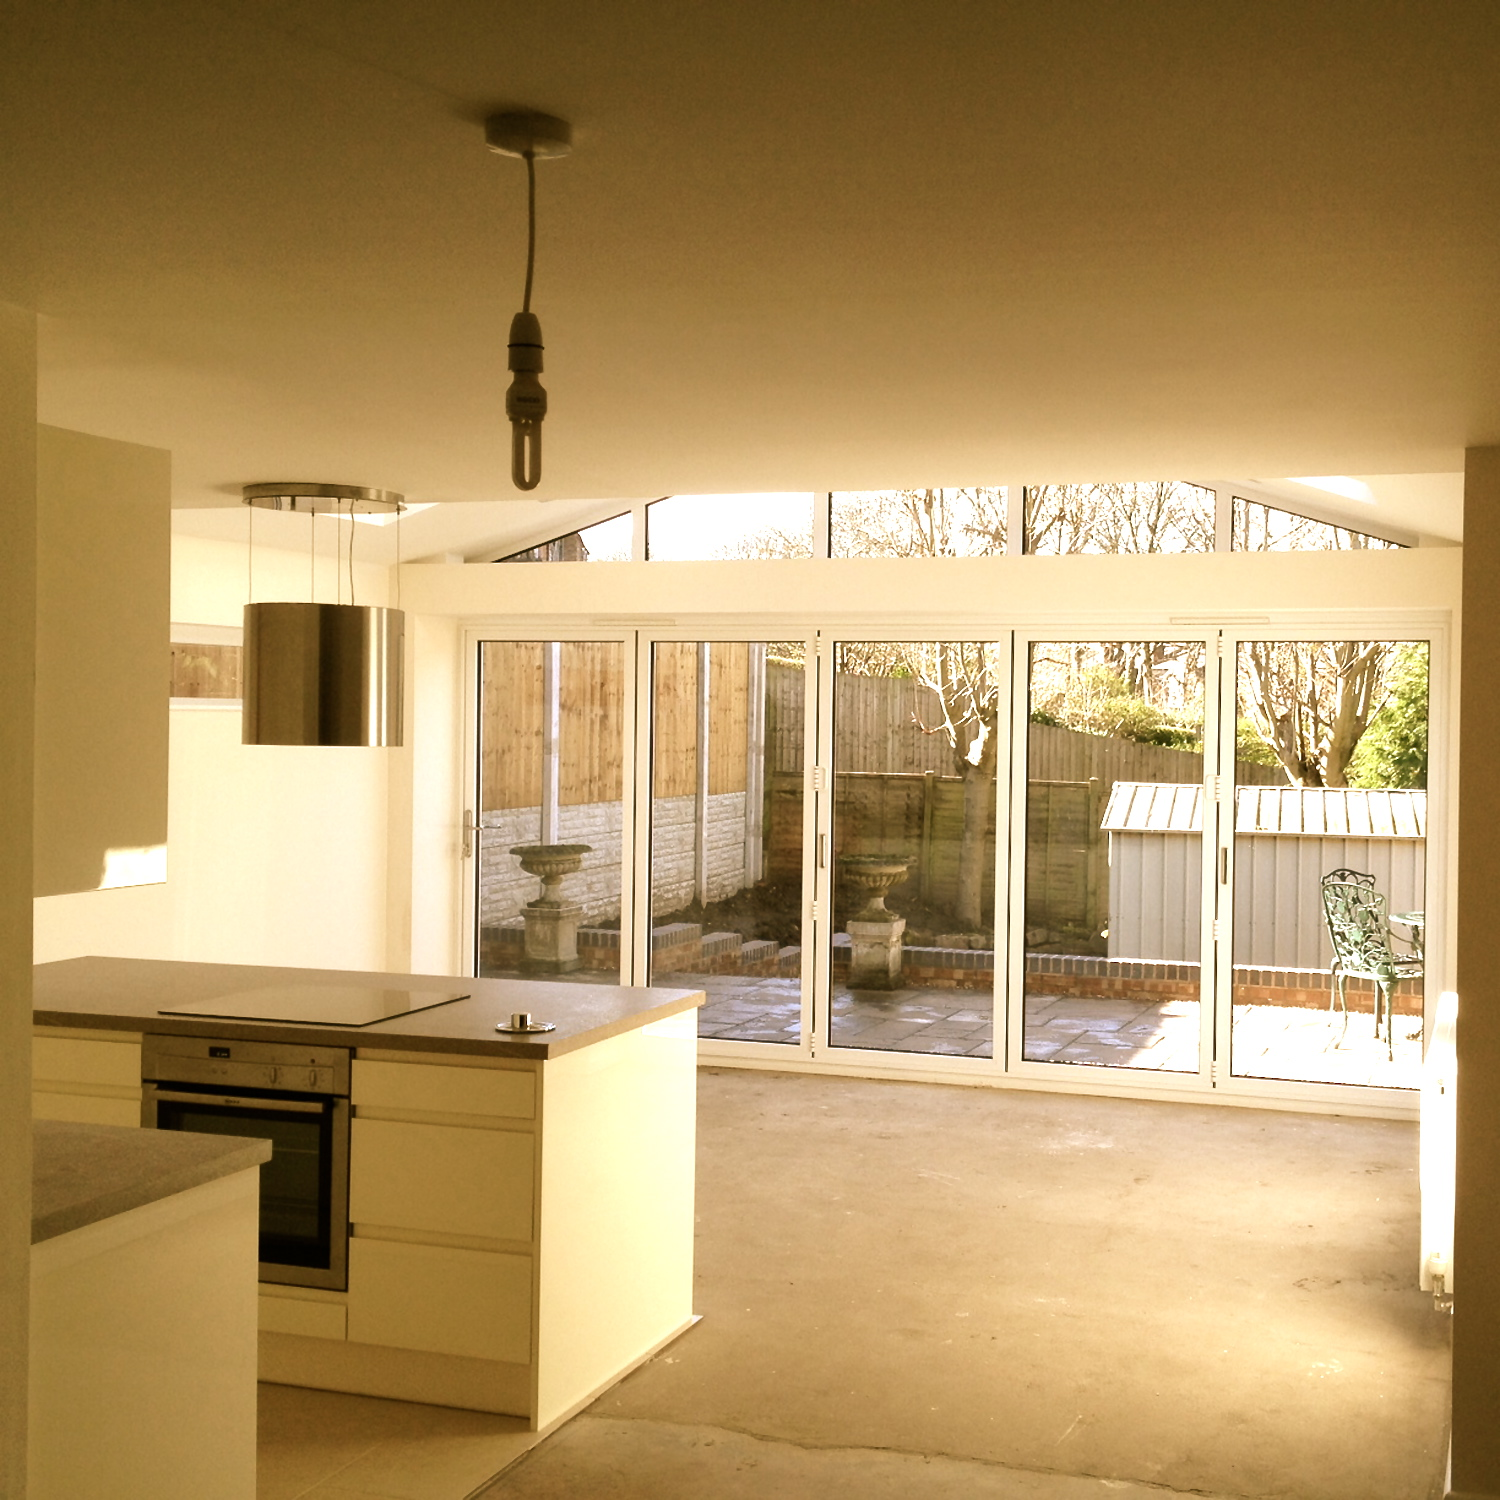 UNDER CONSTRUCTION North Road Harborne House Extension internal view